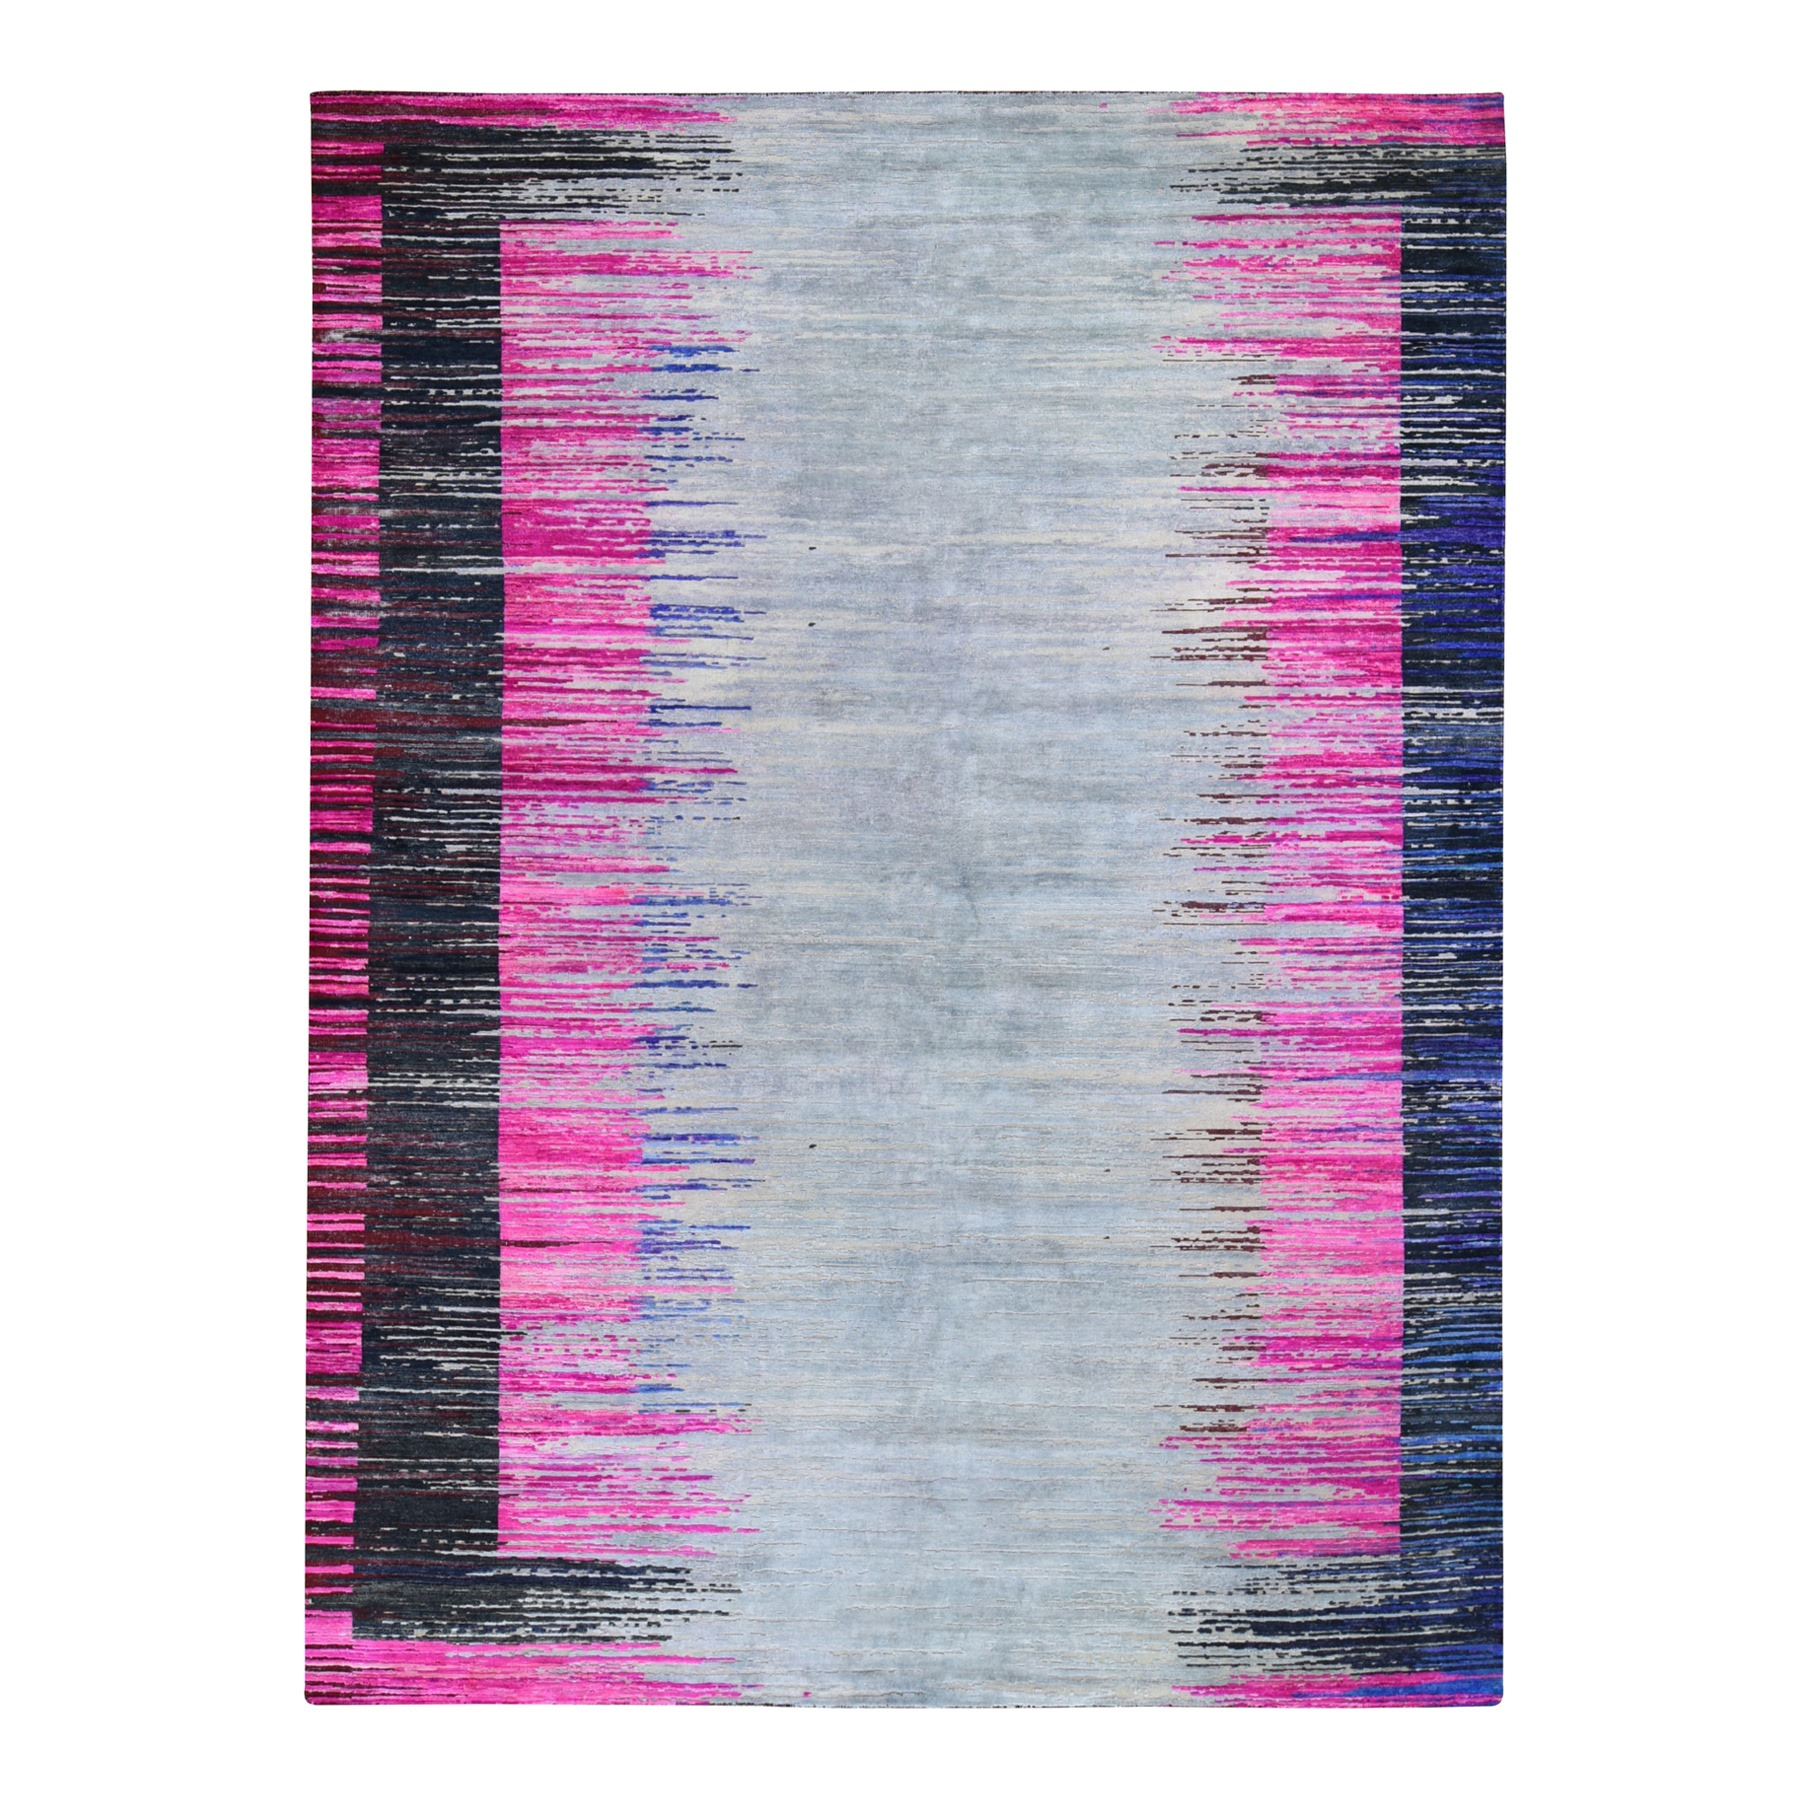 9'x12' Erased Horizontal Line Design ,Pink Sari Silk With Textured Wool Oriental Rug